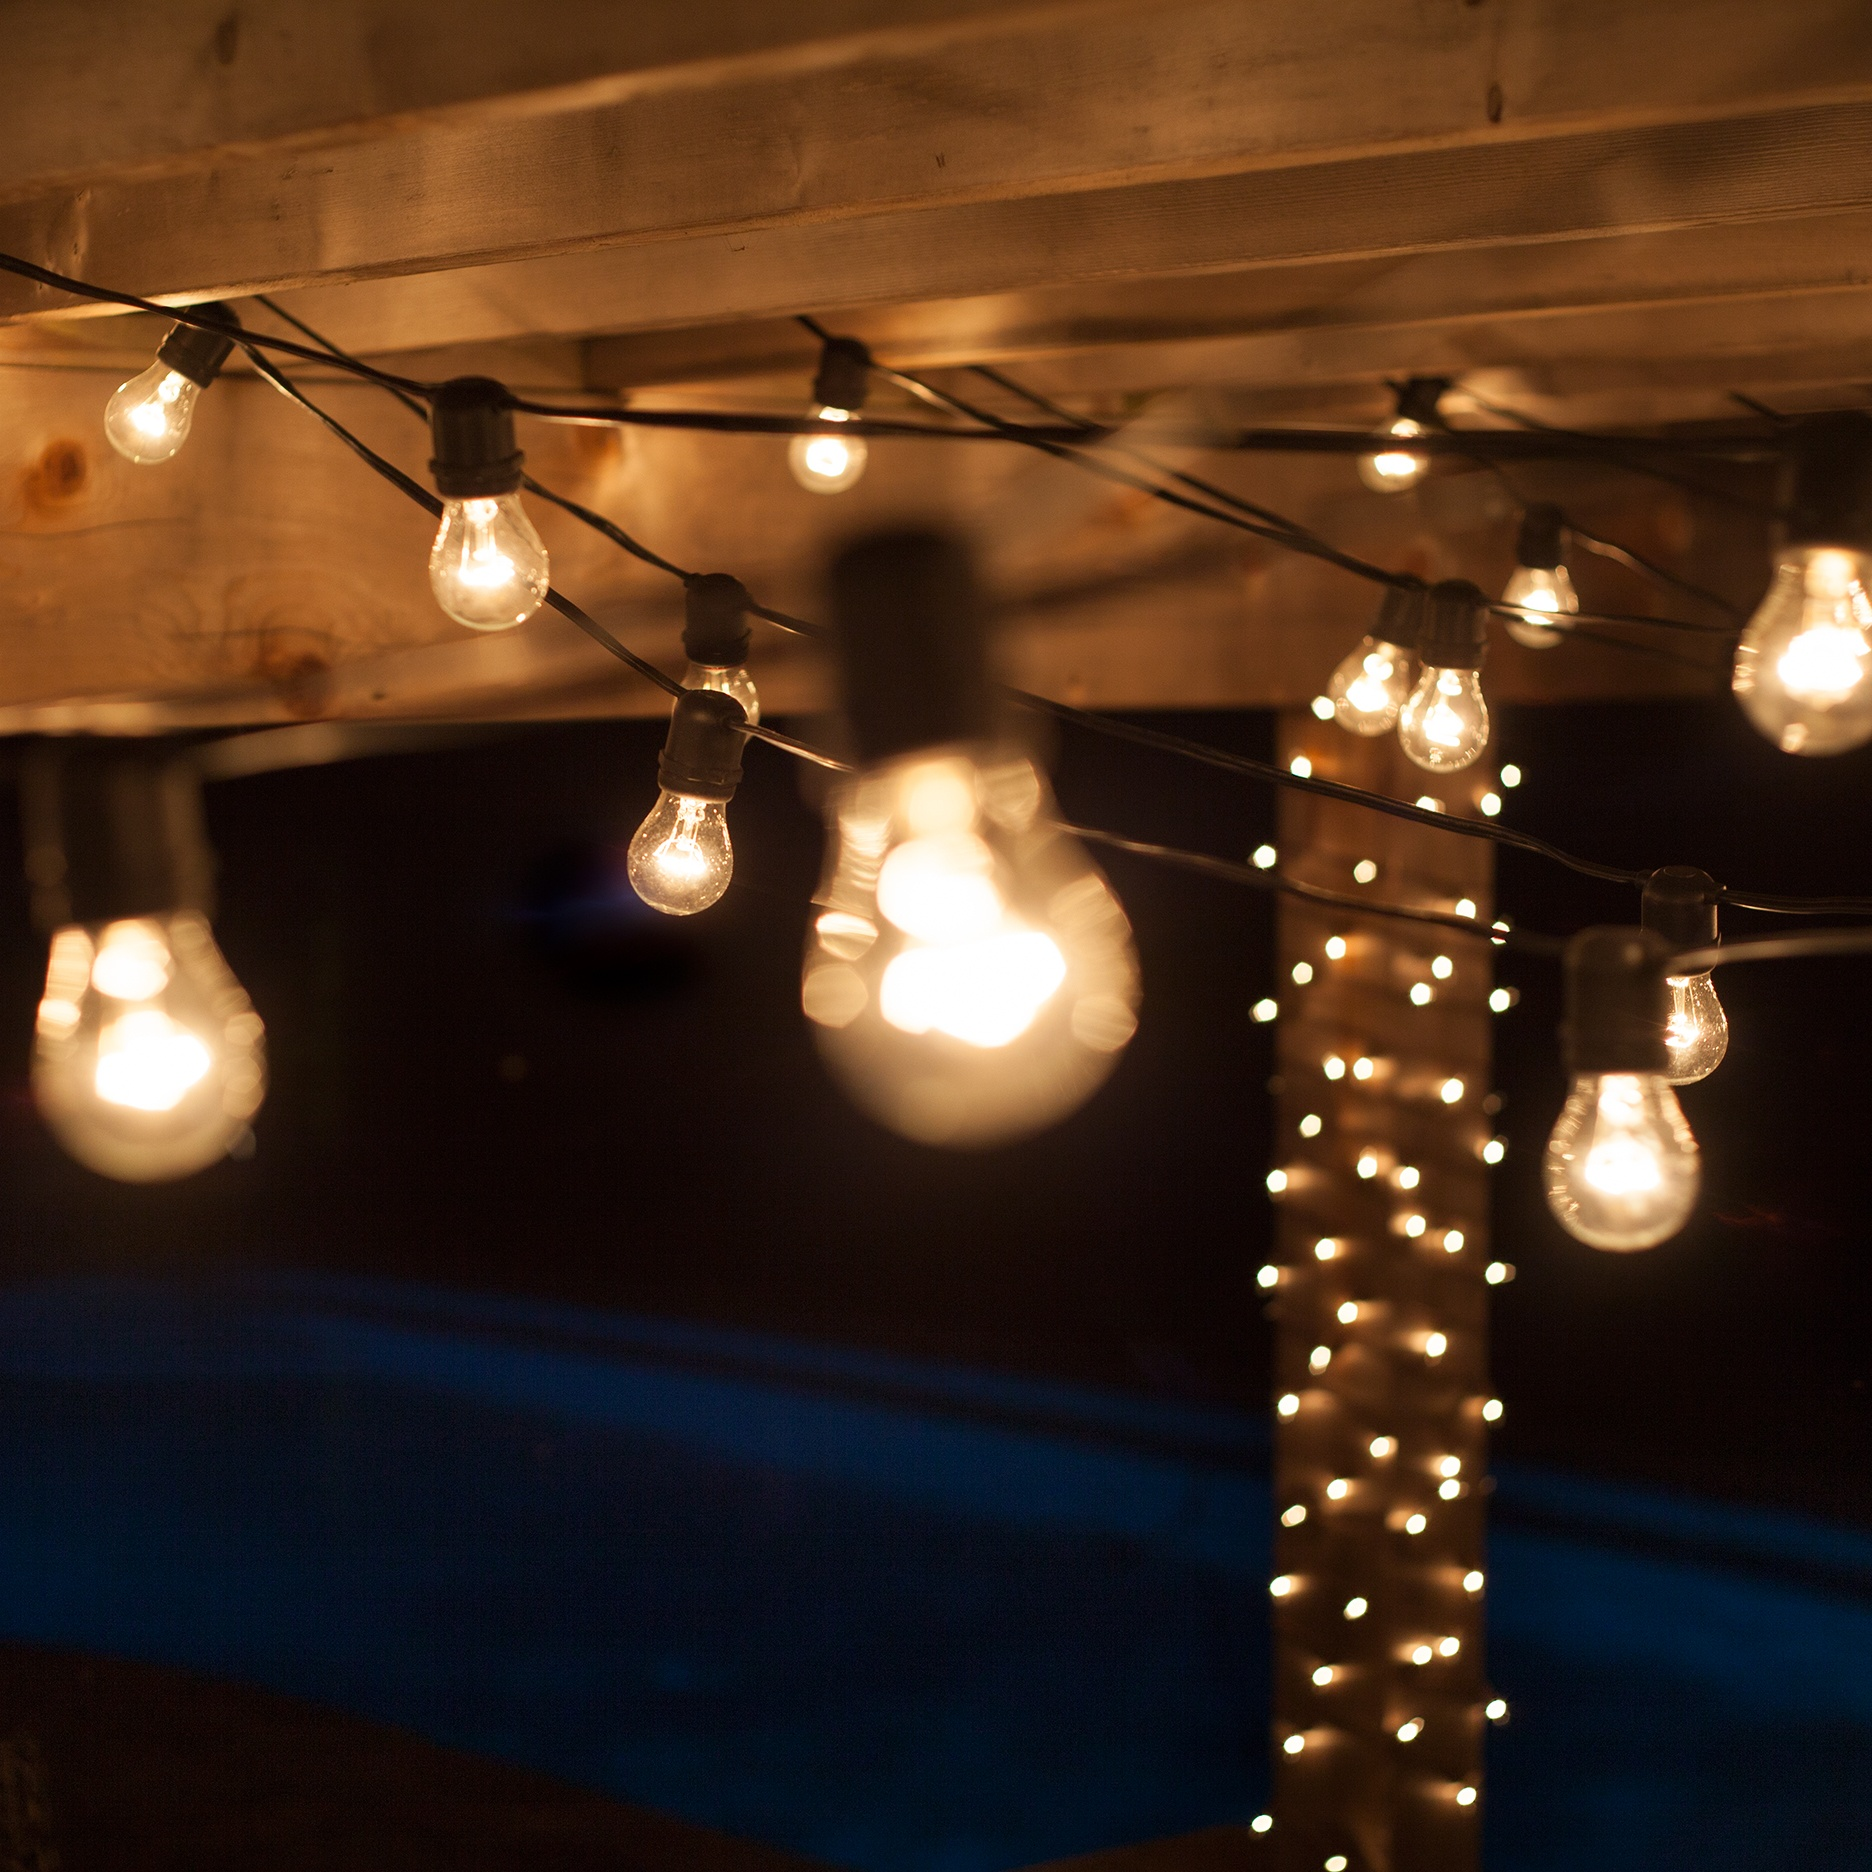 Patio Lights - Commercial Clear Patio String Lights, 24 A15 E26 Bulbs Black Wire